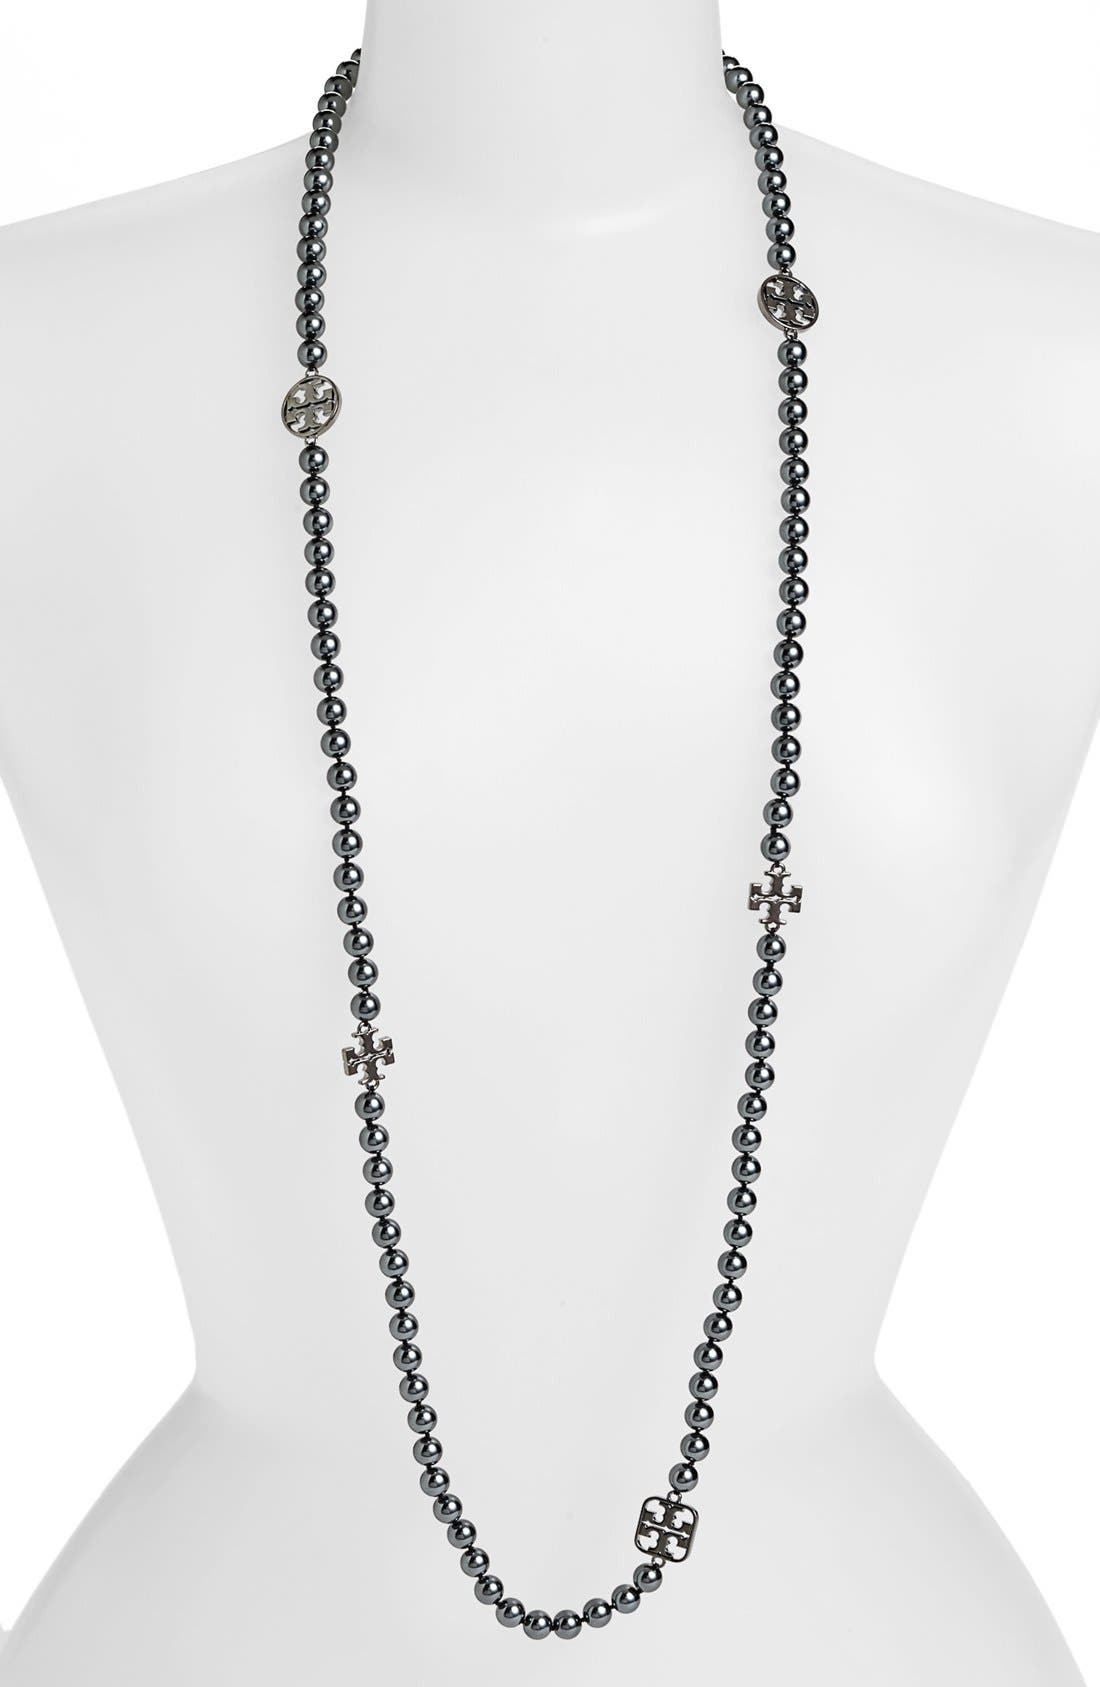 Alternate Image 1 Selected - Tory Burch 'Evie' Logo & Glass Pearl Necklace